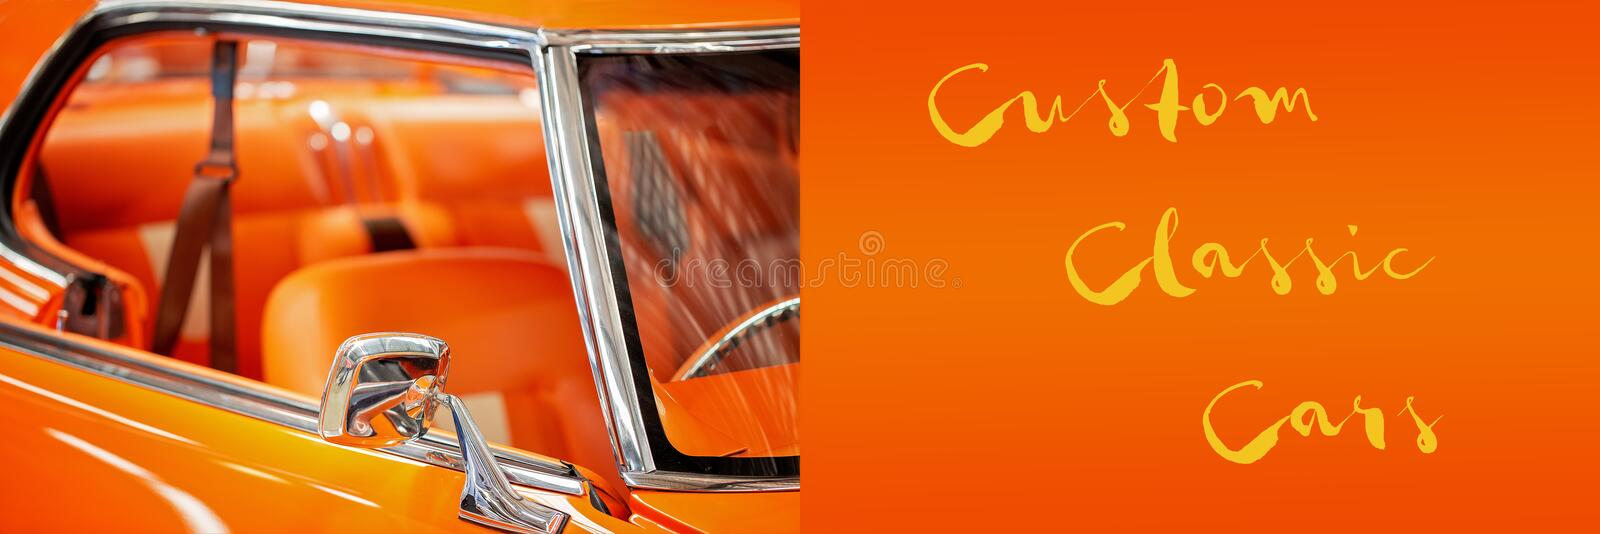 Custom vintage car banner. With custom classic cars text announcement royalty free stock images